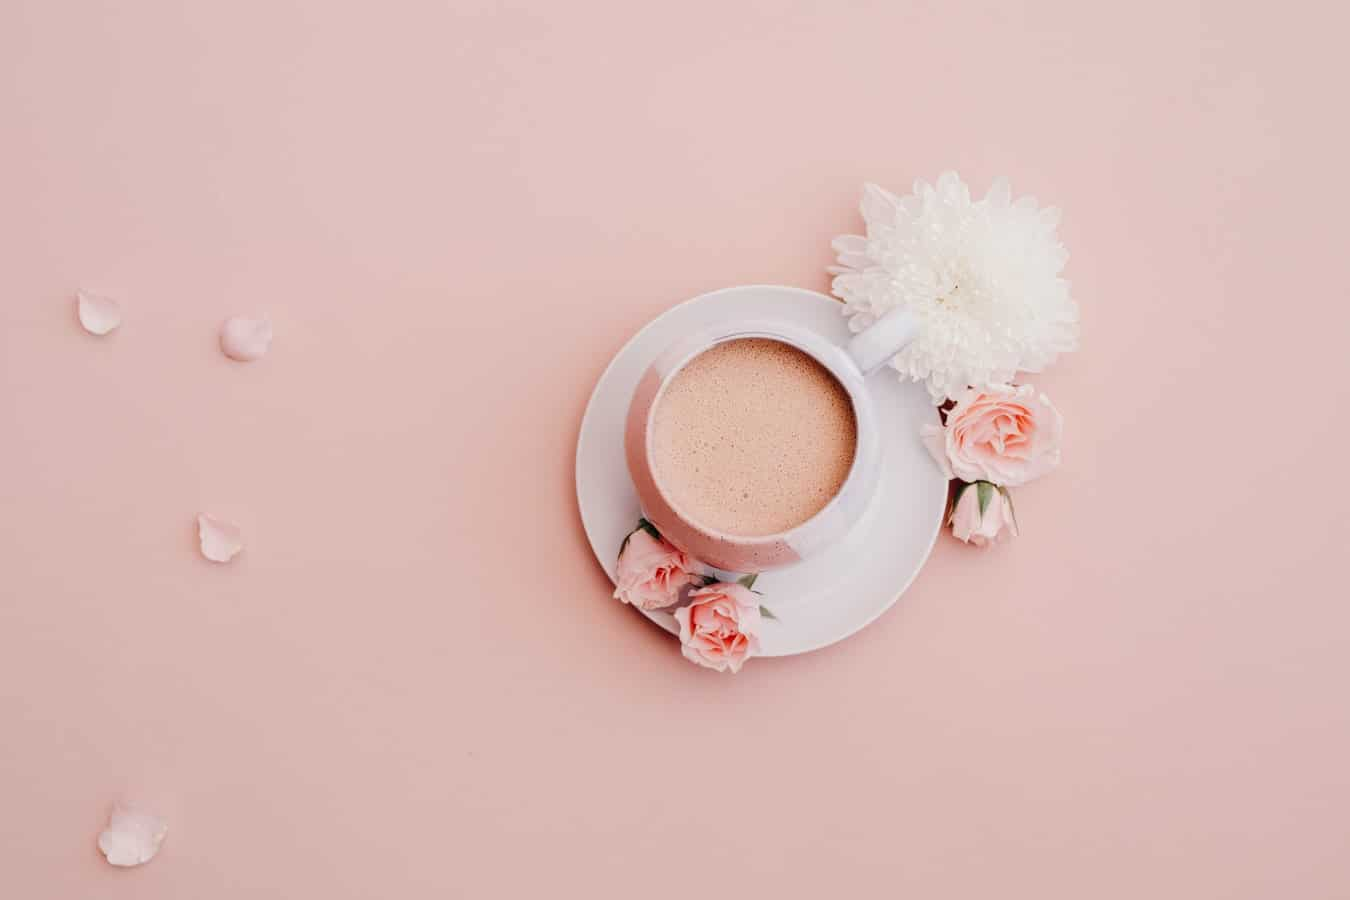 Food-Trends, Kaffee, rosa, Rosen